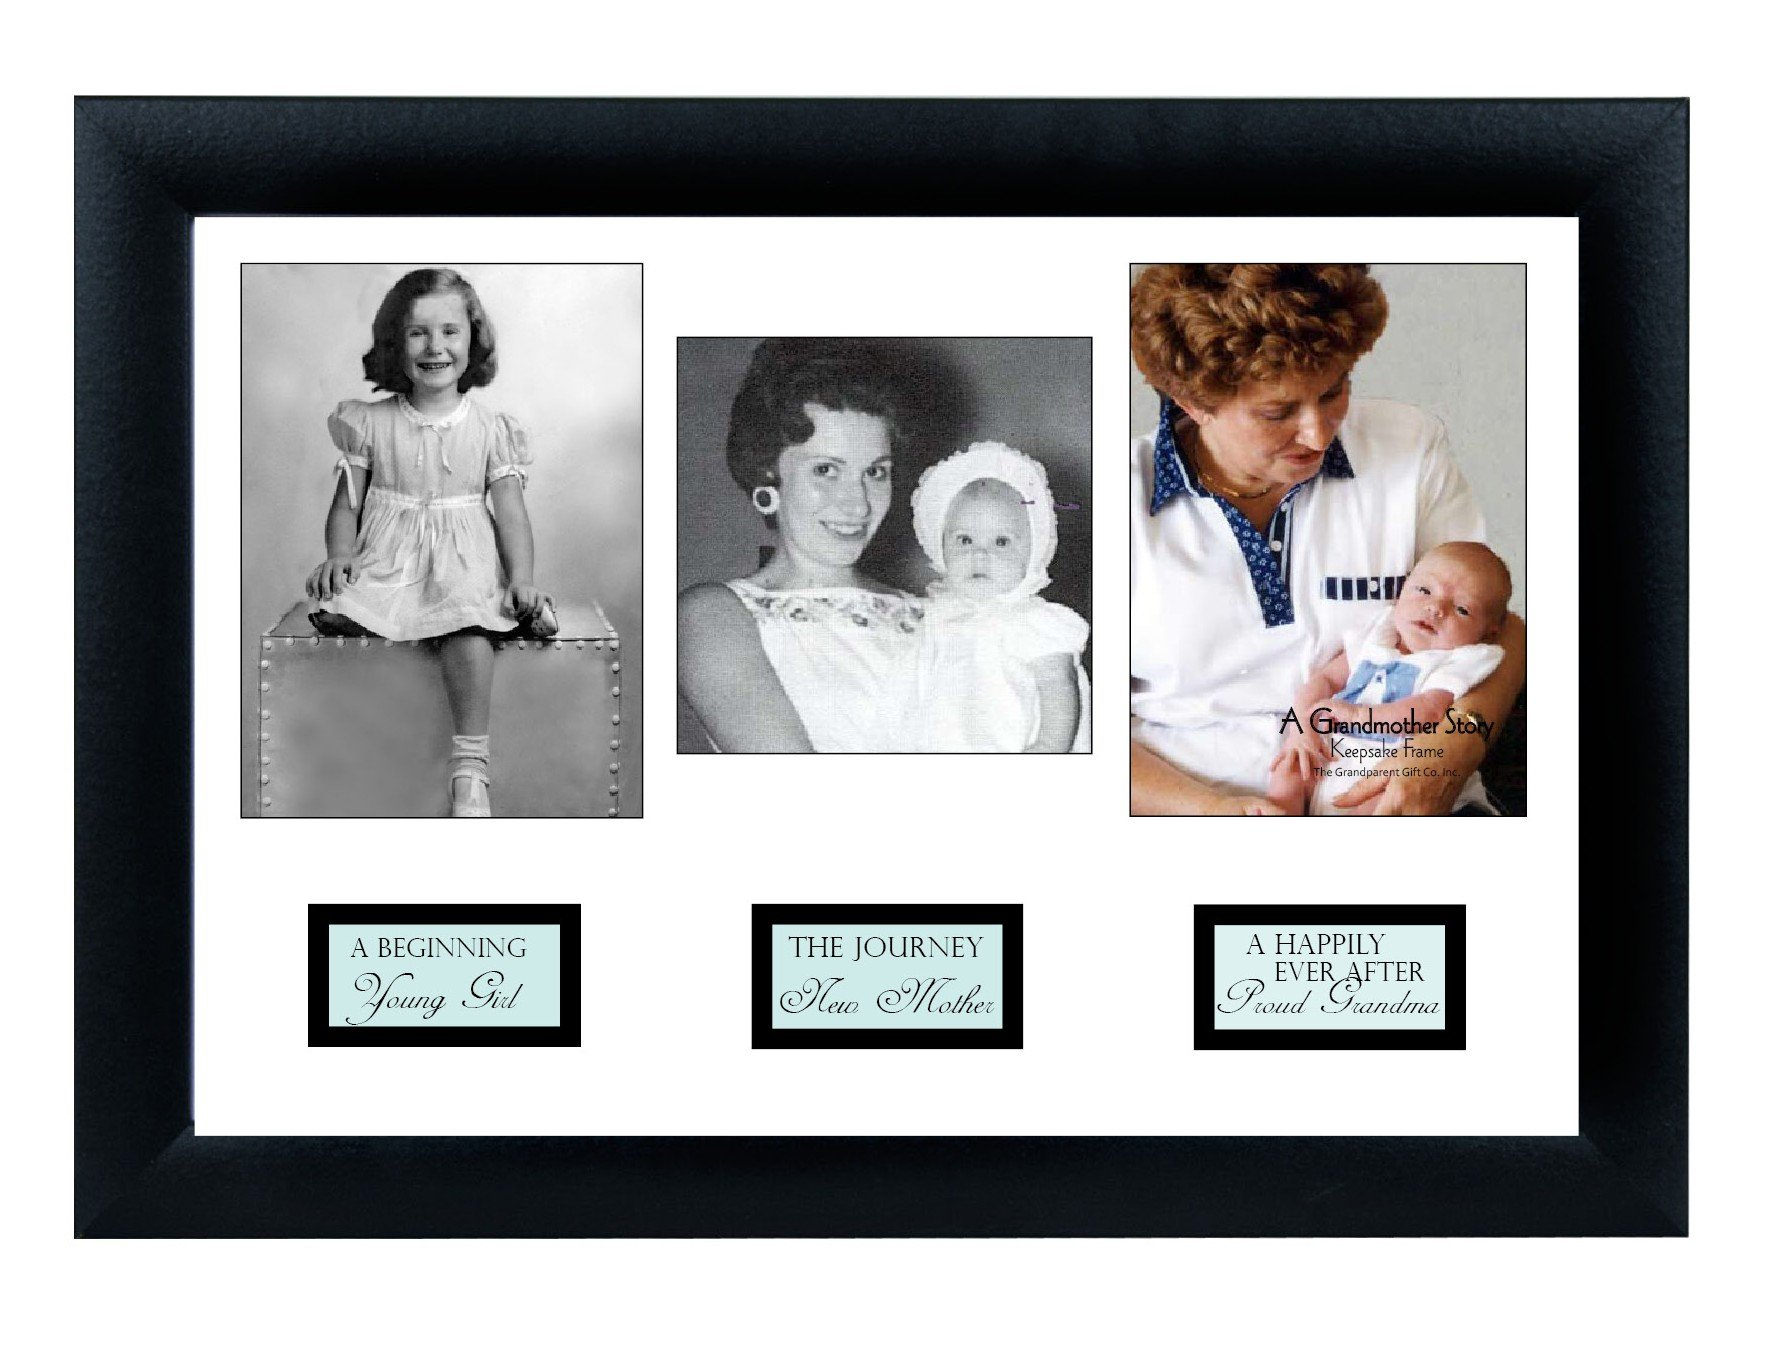 Amazon.com : The Grandparent Gift Life Story Frame, Grandpa : Baby ...